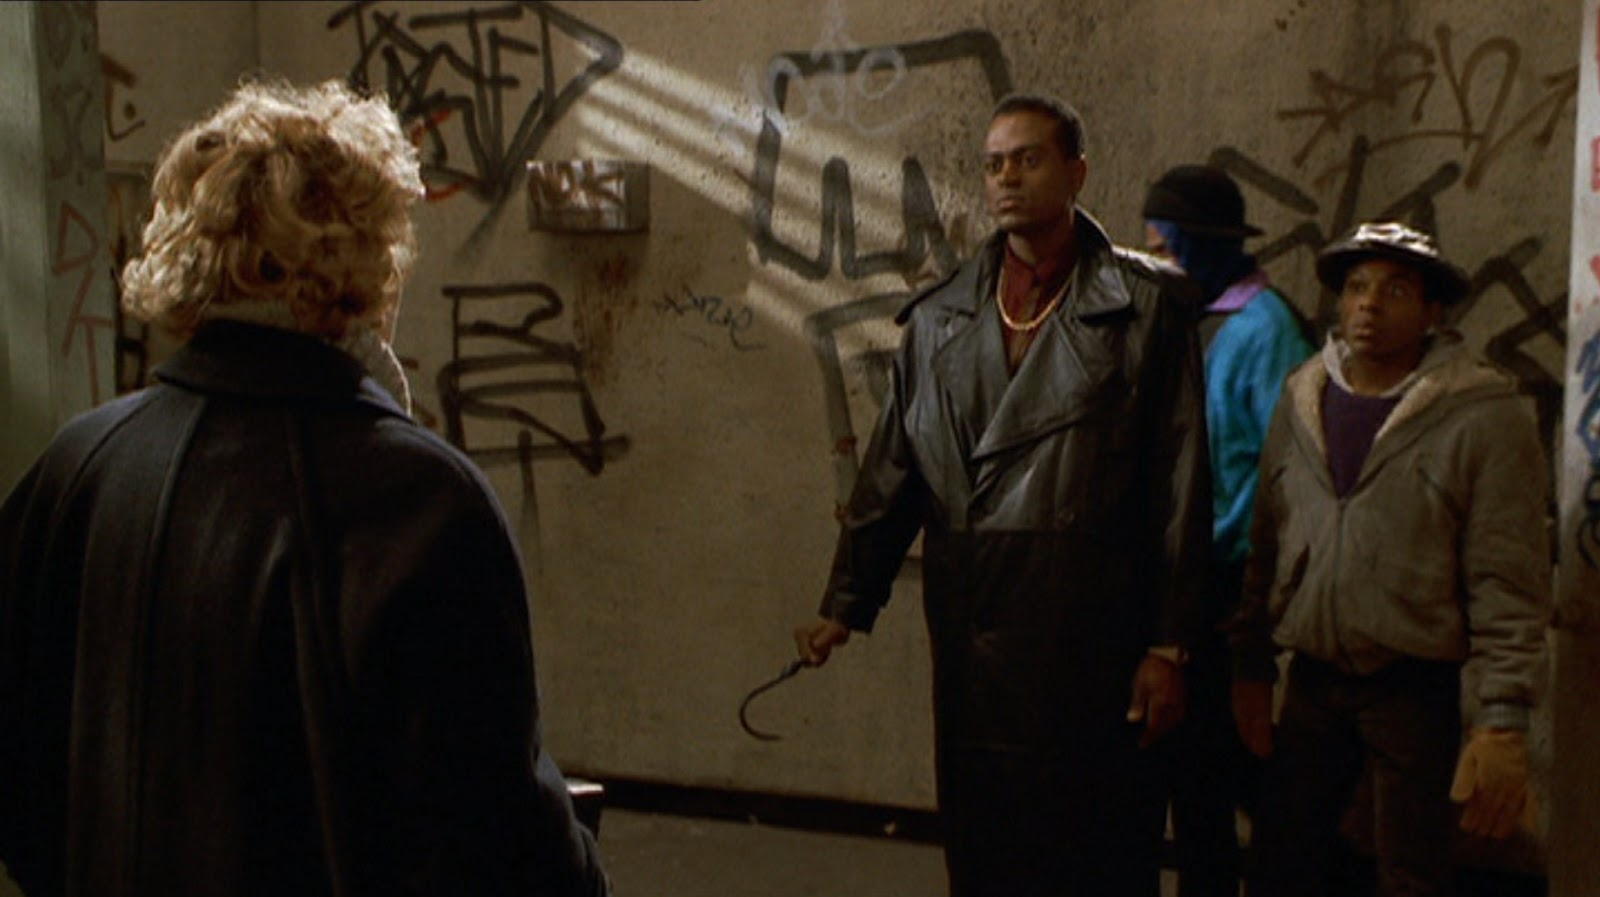 A still from the movie Candyman.